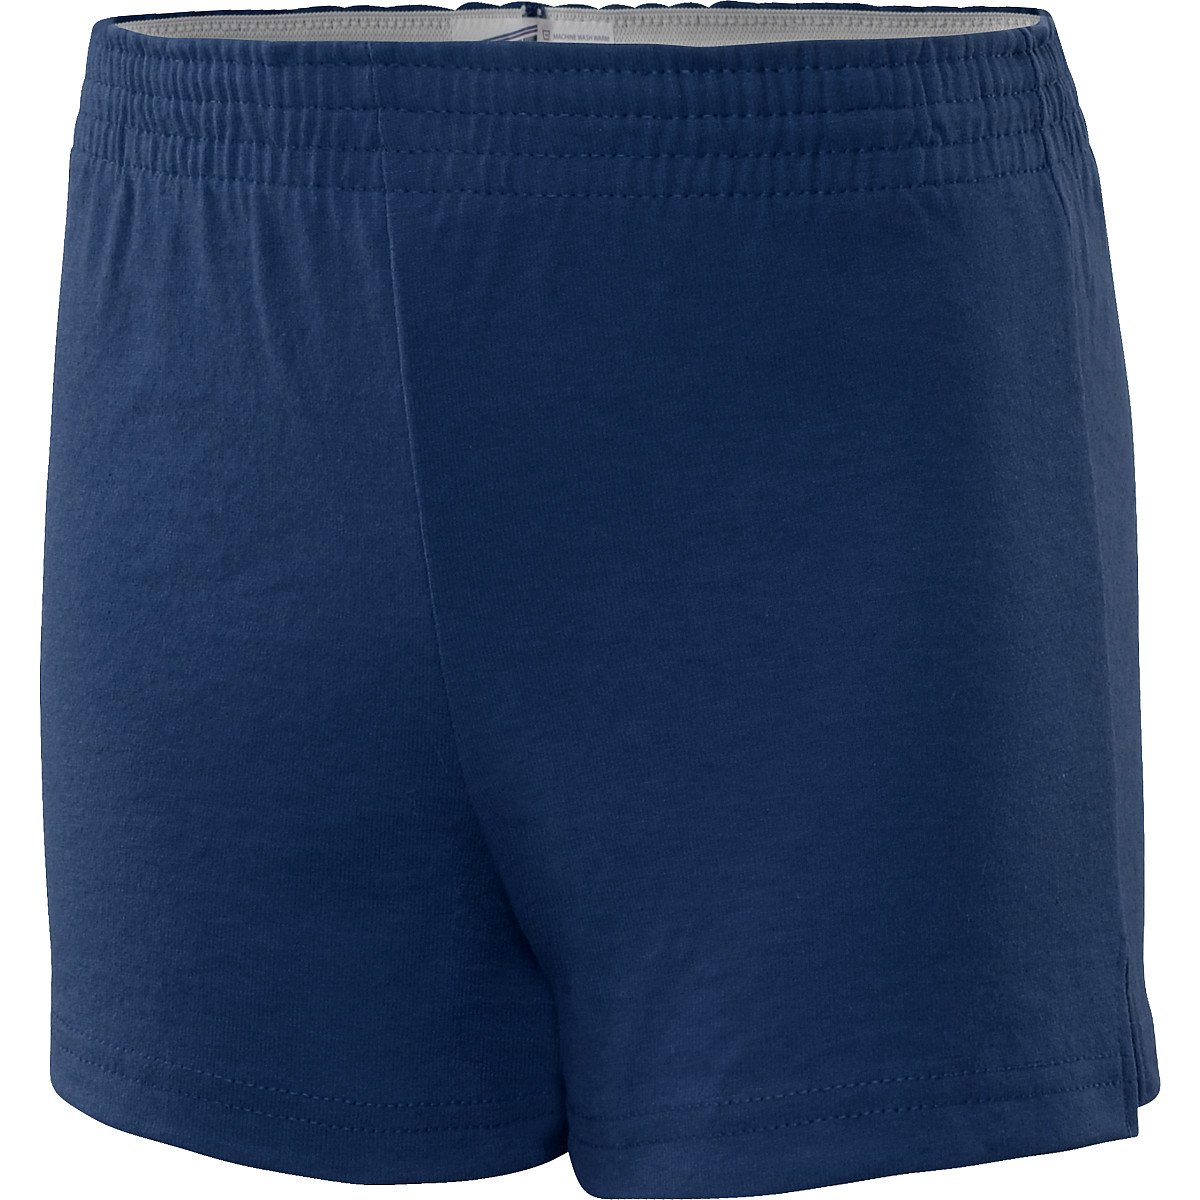 d747a75316b9f Get Quotations · Soffe Girls  Cheer Shorts